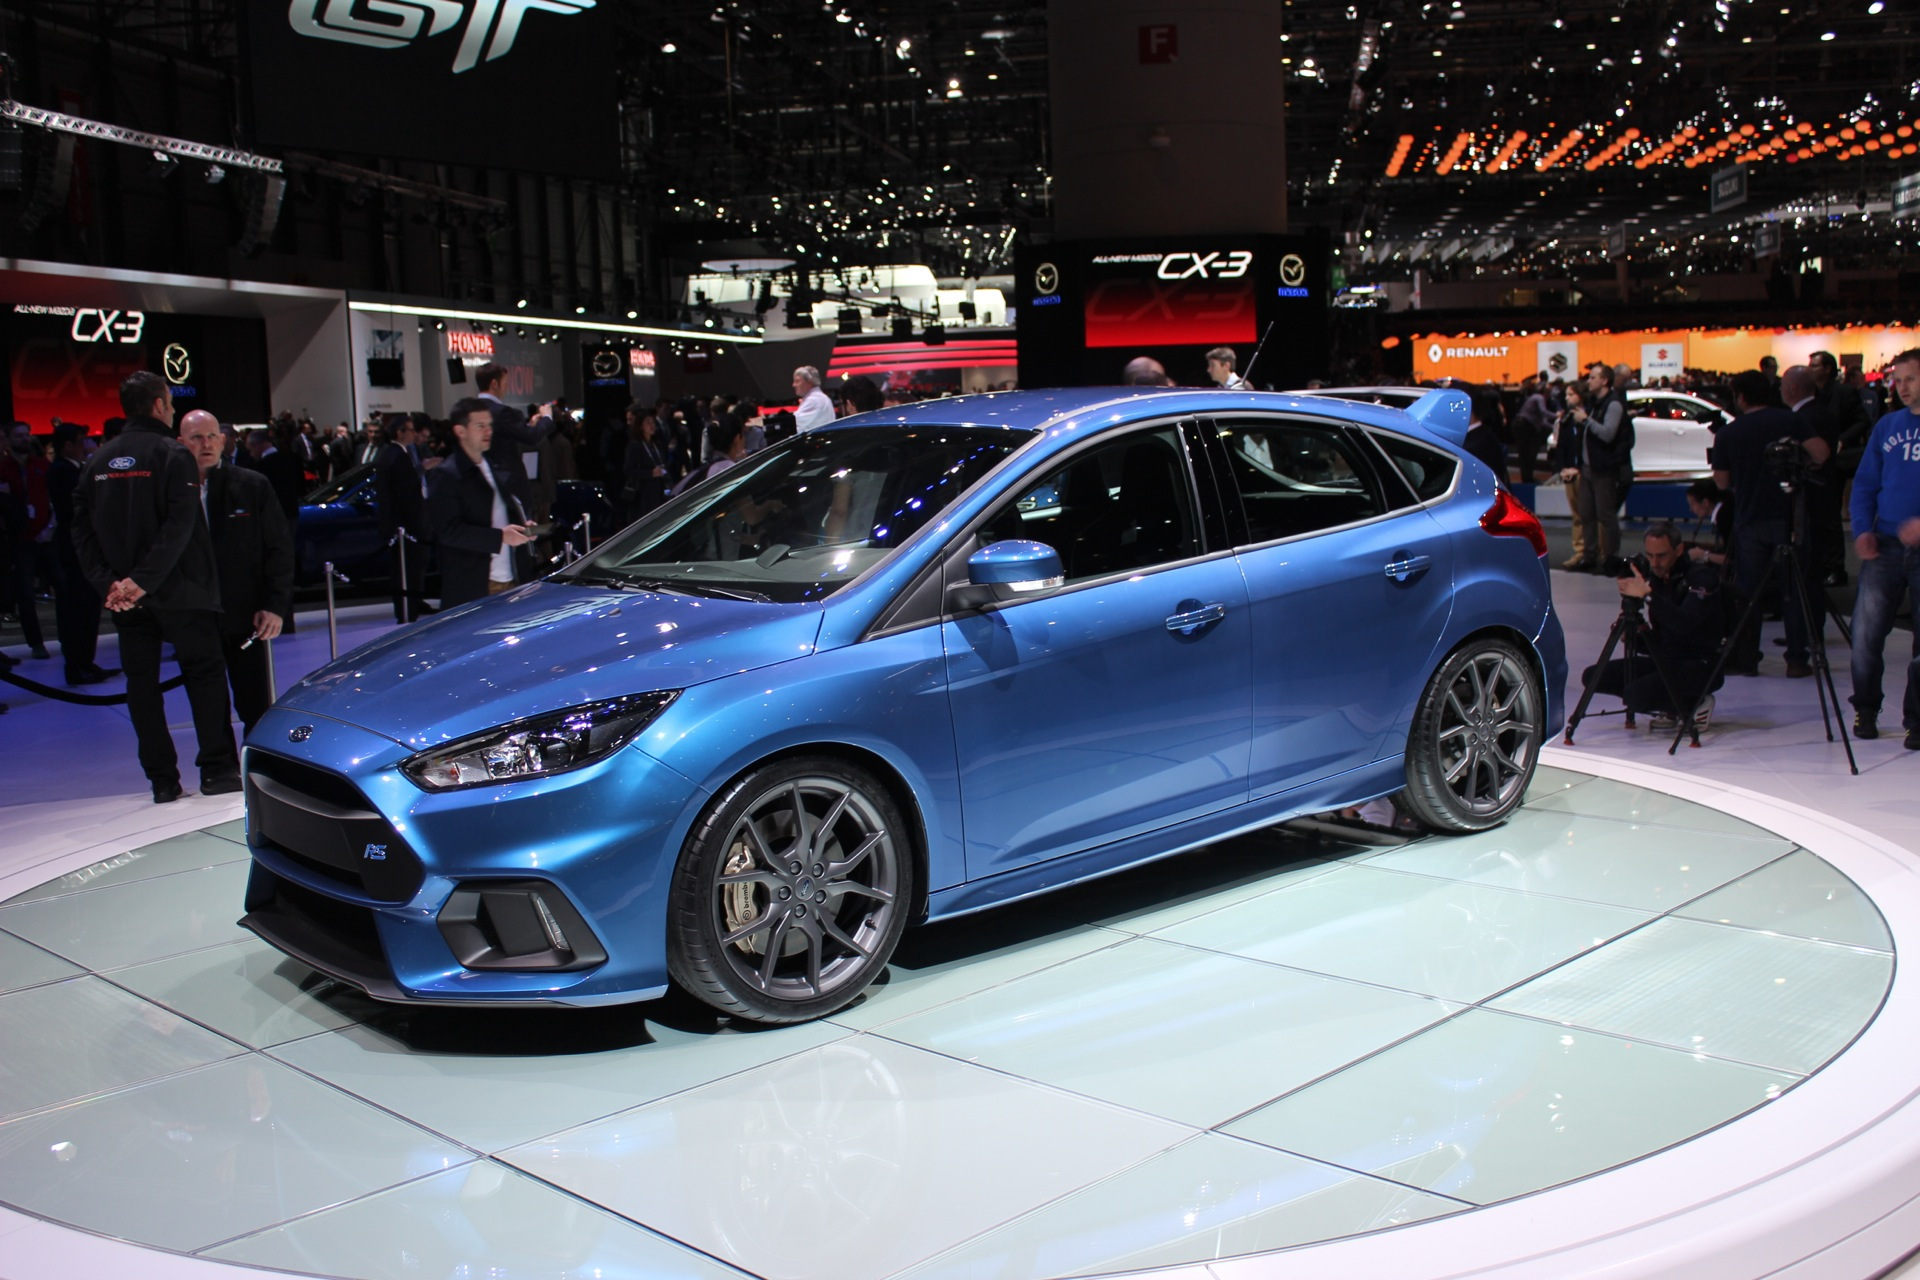 Ford Focus Rs 2016 Hd Wallpapers Free Download